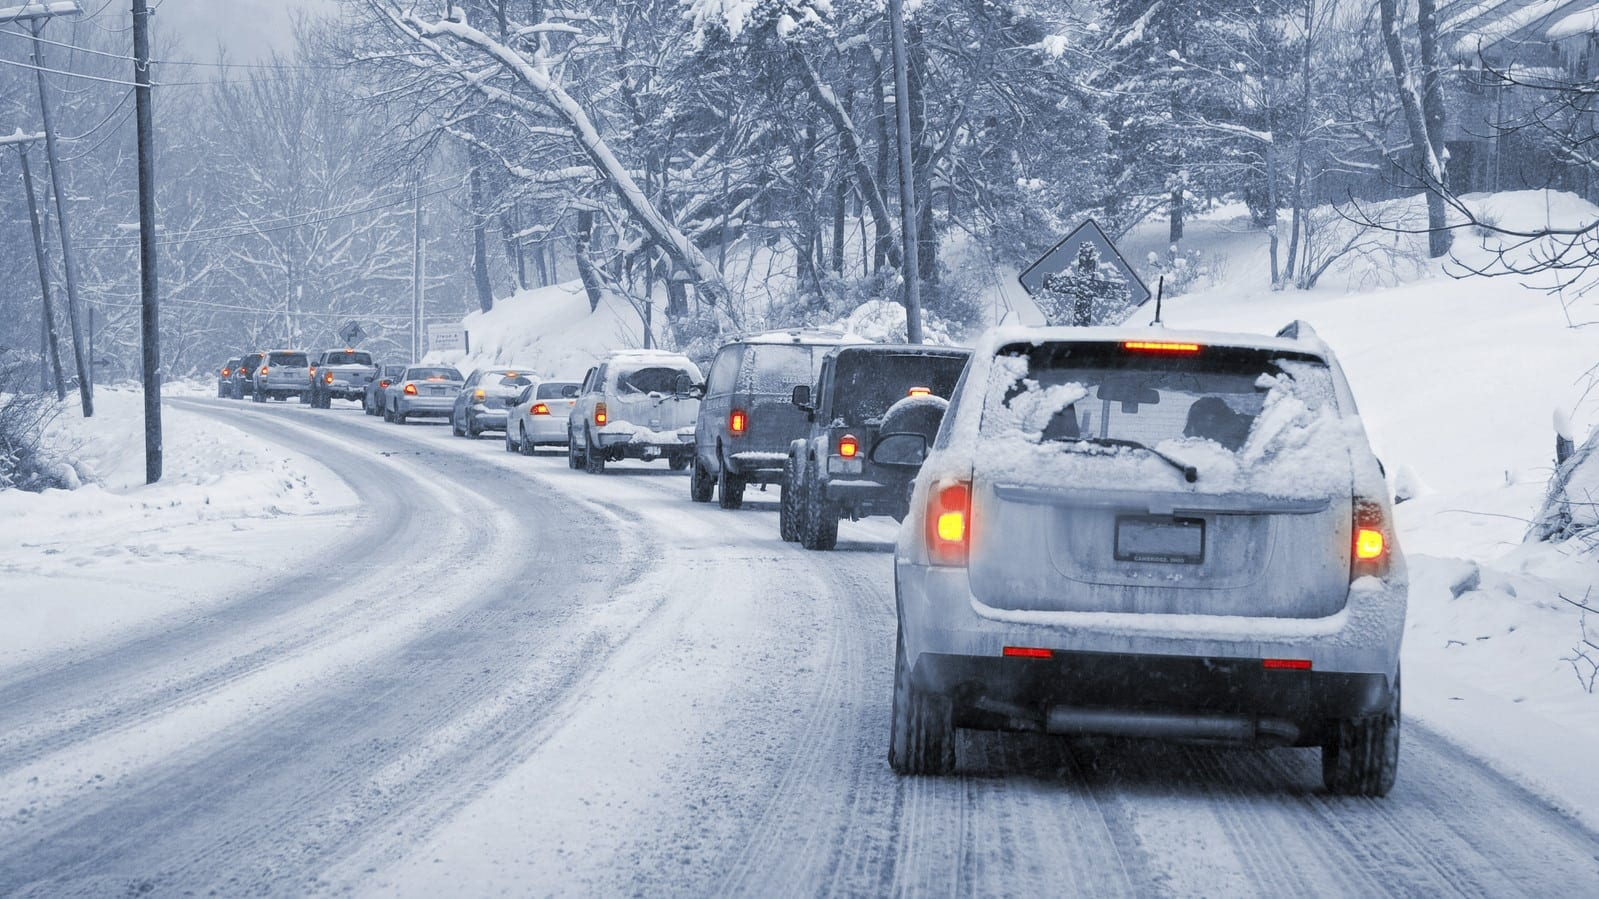 Traffic Jam On An Icy Road Stock Photo